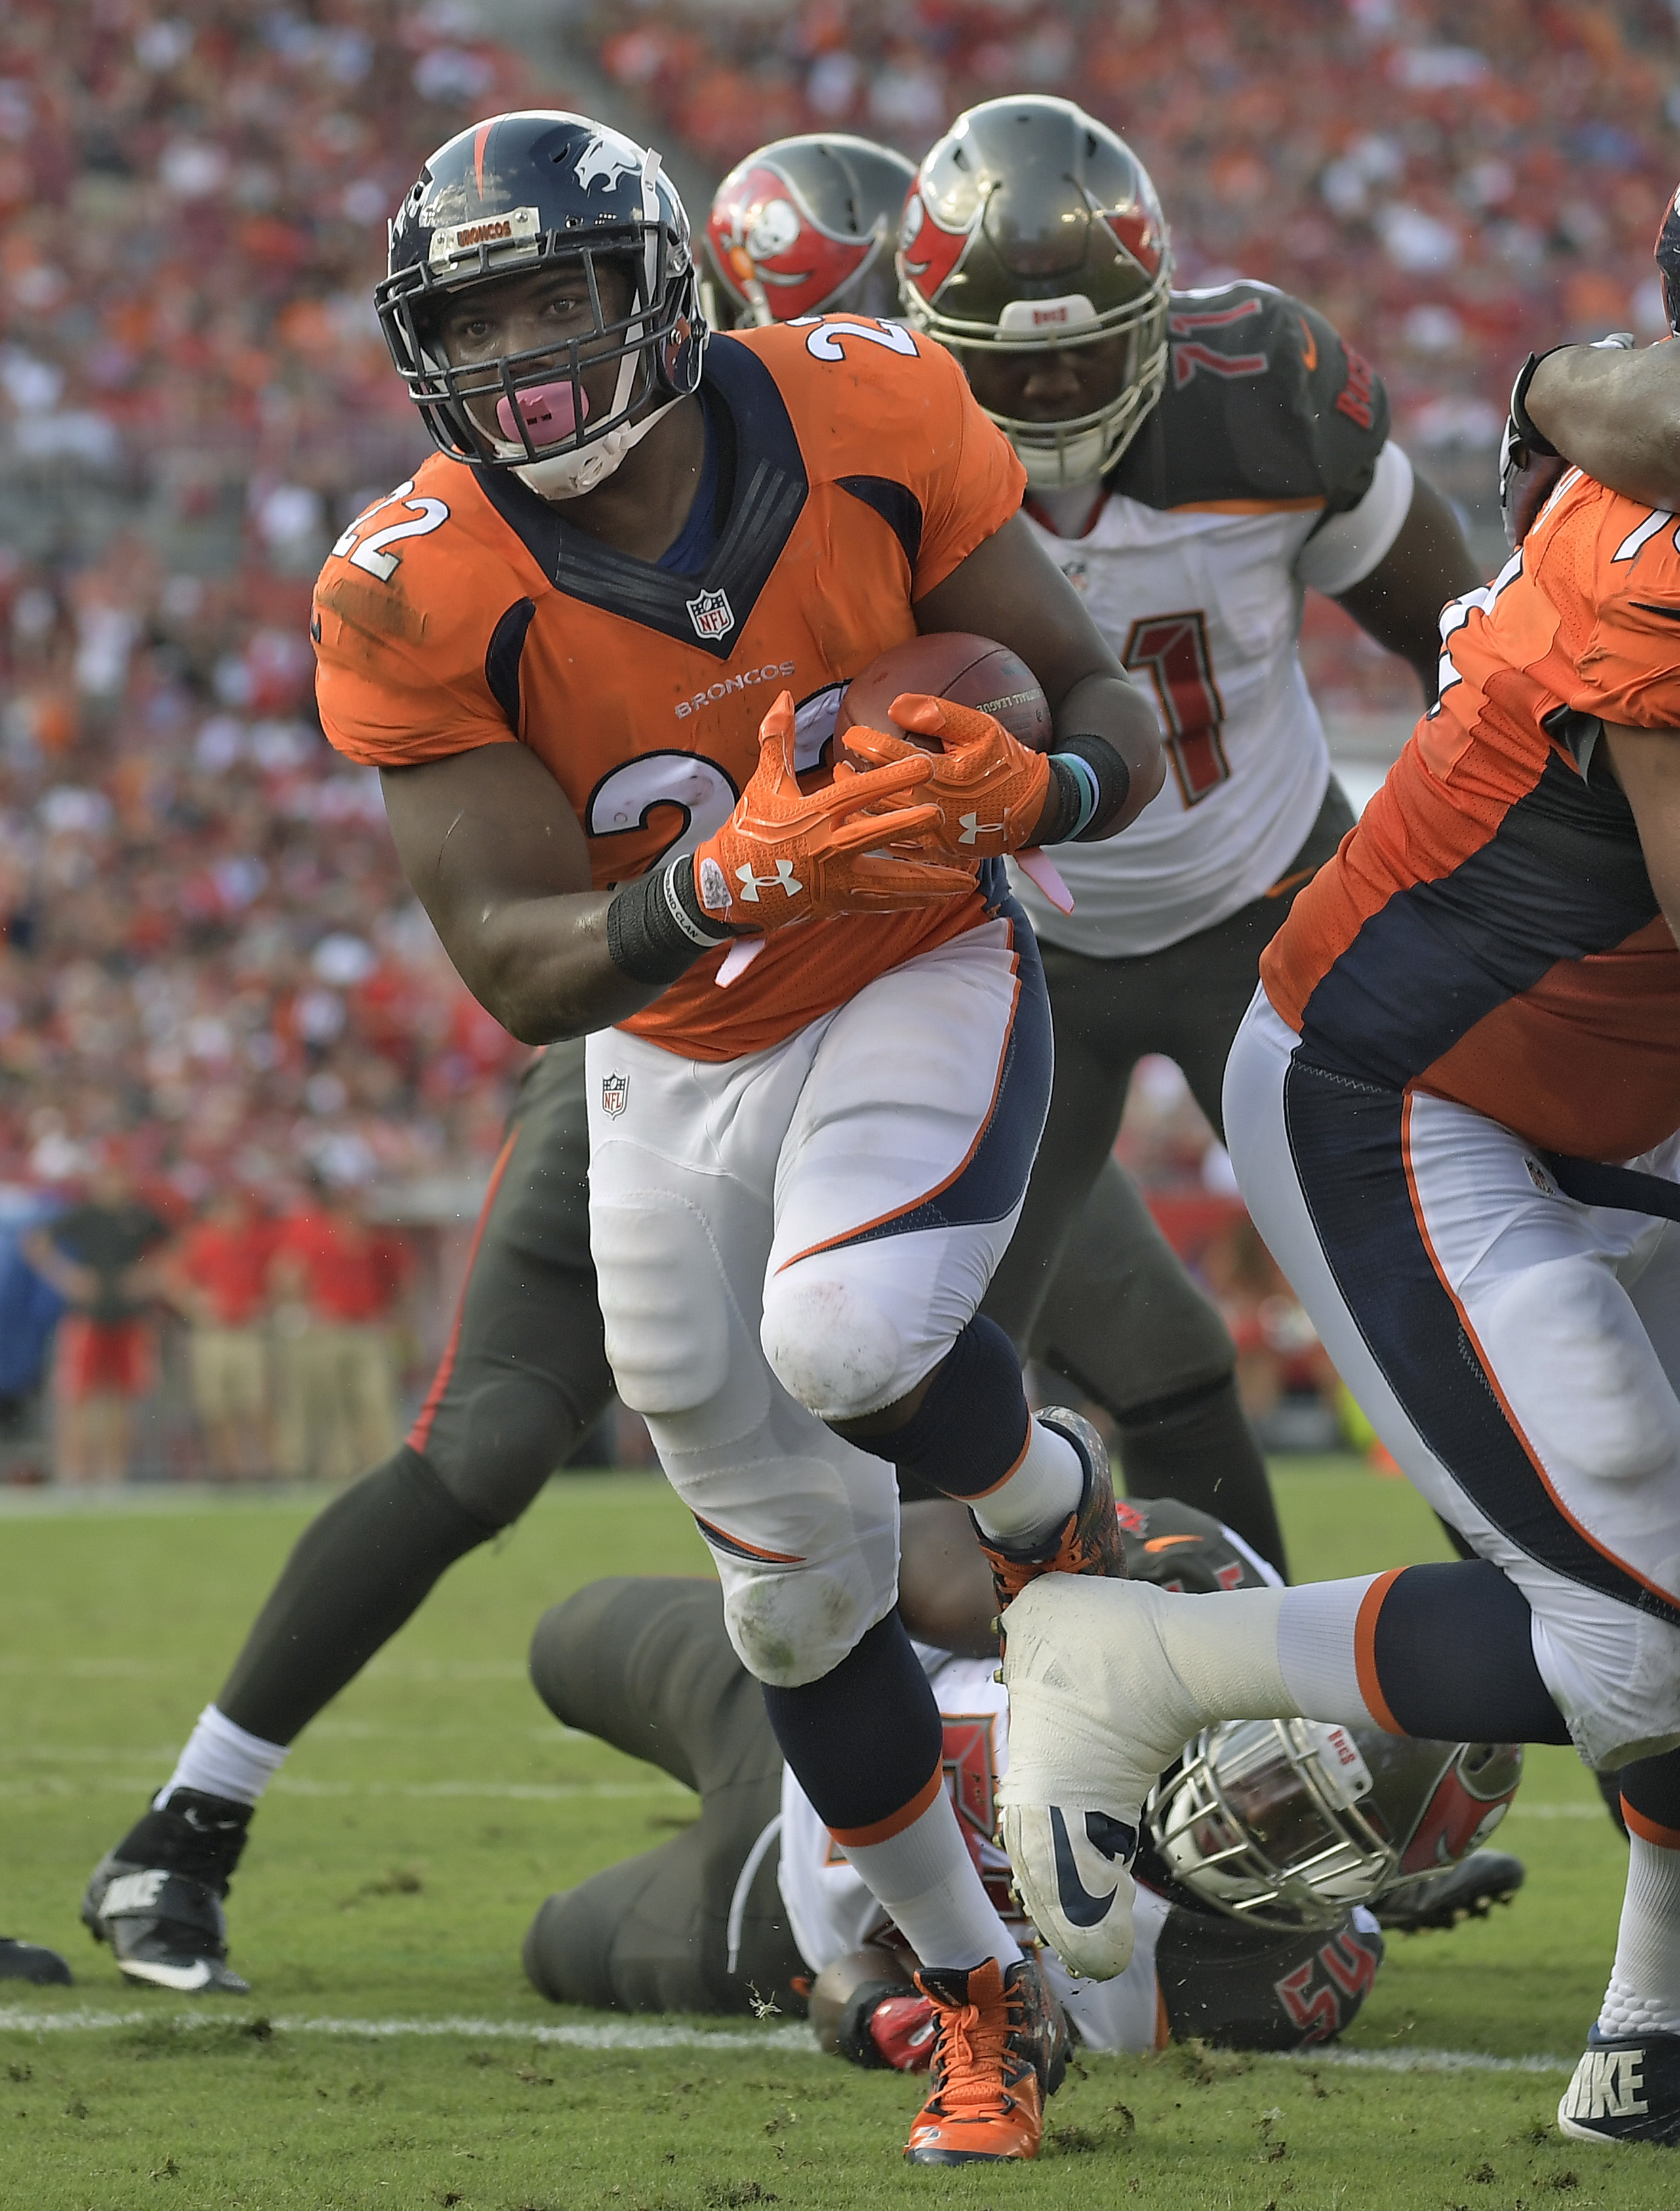 Denver Broncos running back C.J. Anderson (22) runs 1-yard for a touchdown run against the Tampa Bay Buccaneers during the second quarter of an NFL football game Sunday, Oct. 2, 2016, in Tampa, Fla. (AP Photo/Phelan Ebenhack)